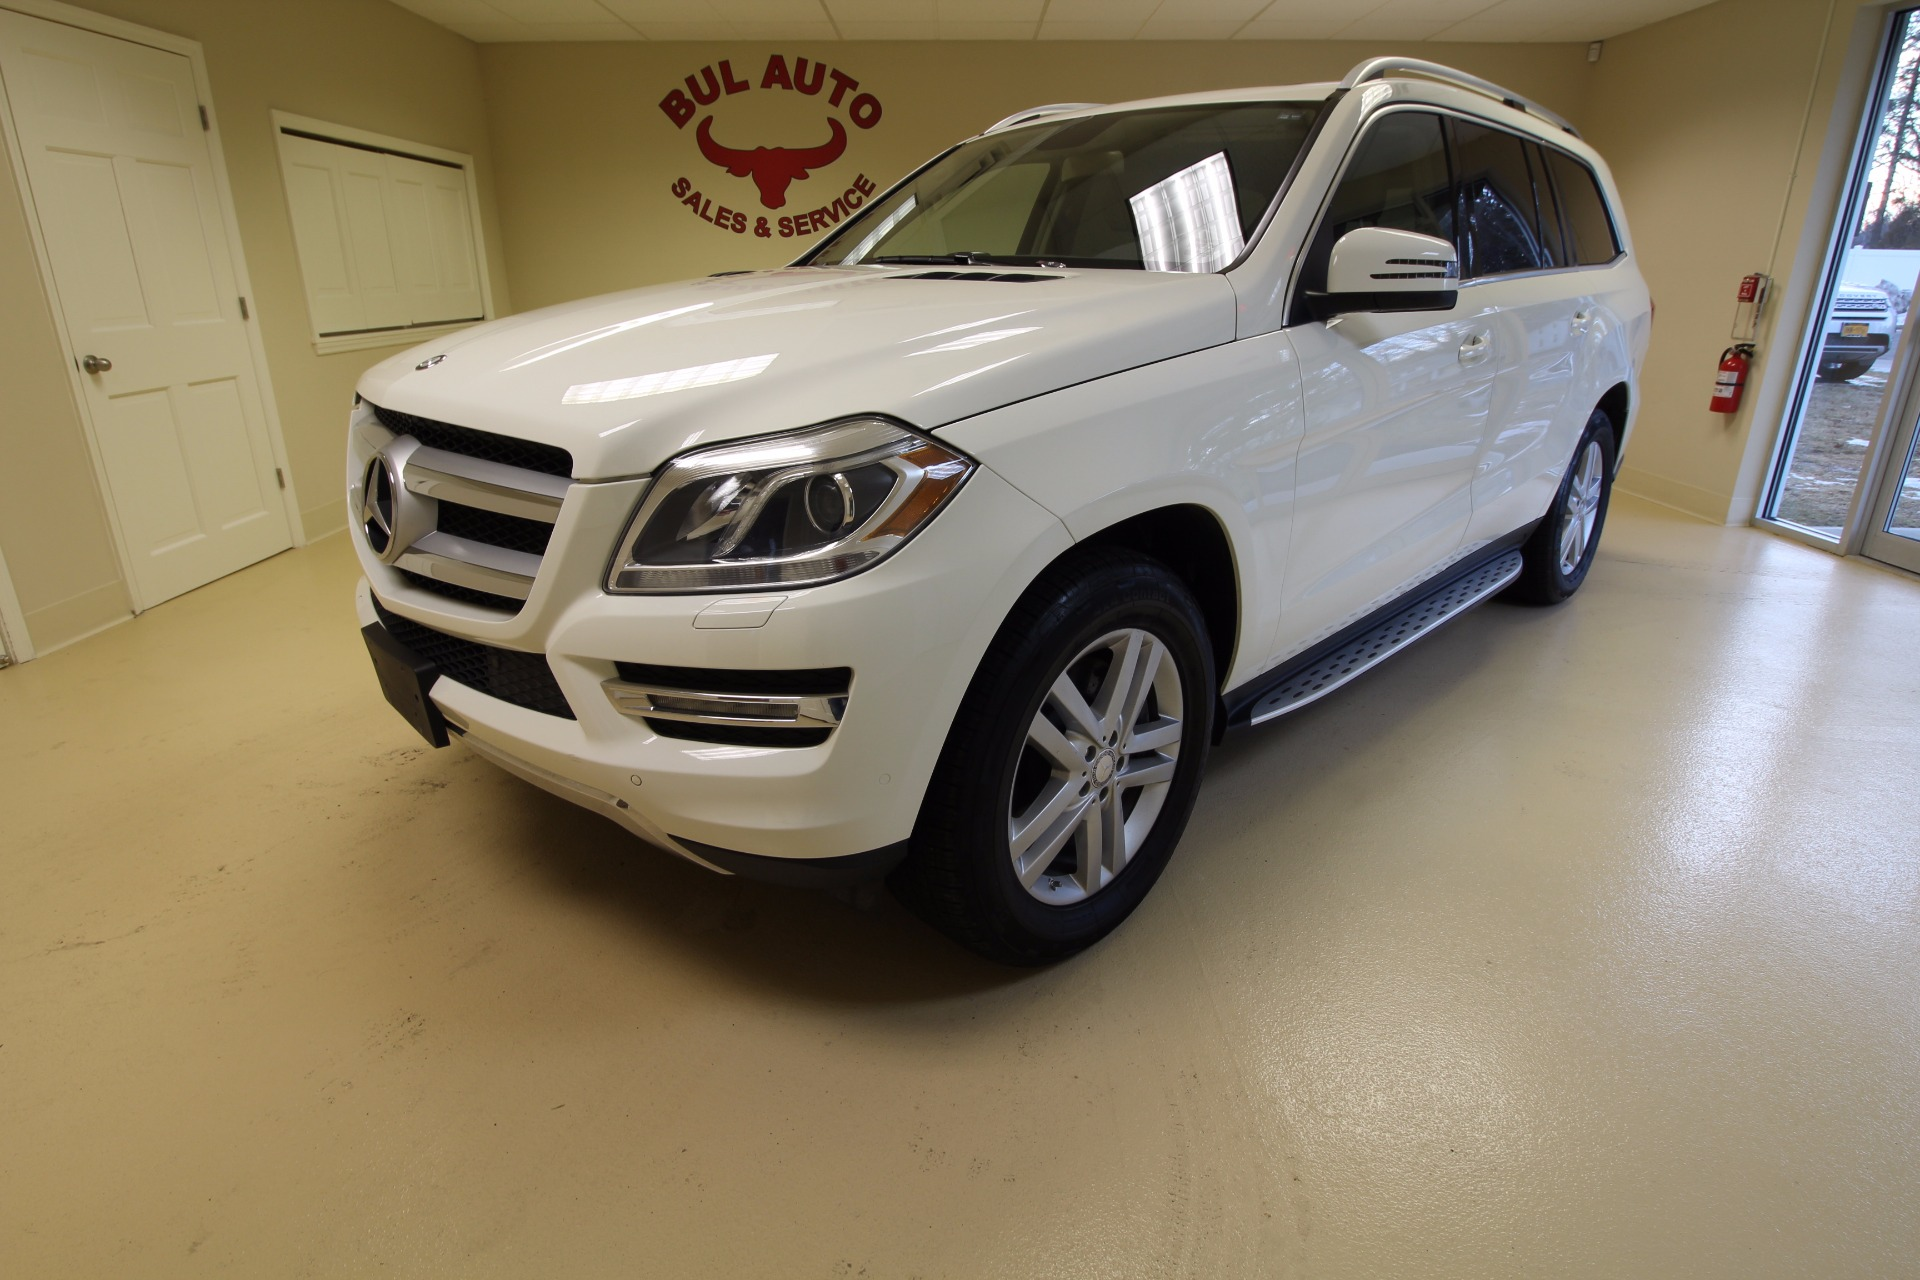 2013 mercedes benz gl class gl450 4matic stock 17018 for sale near albany ny ny mercedes. Black Bedroom Furniture Sets. Home Design Ideas